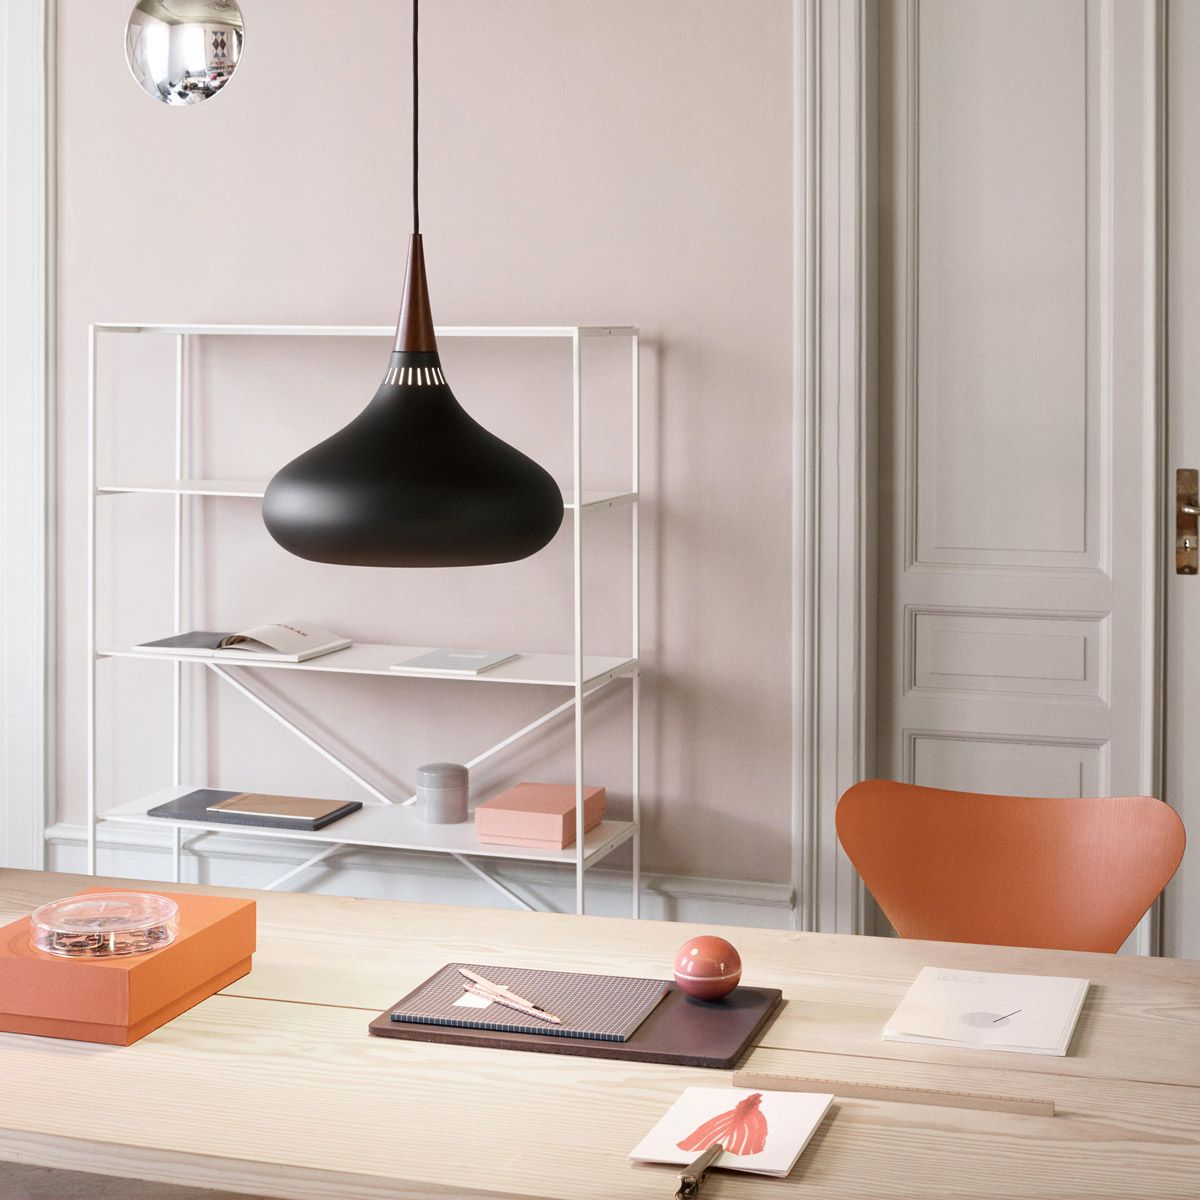 Orient black lamp by Jo Hammerborg edited by Light Years